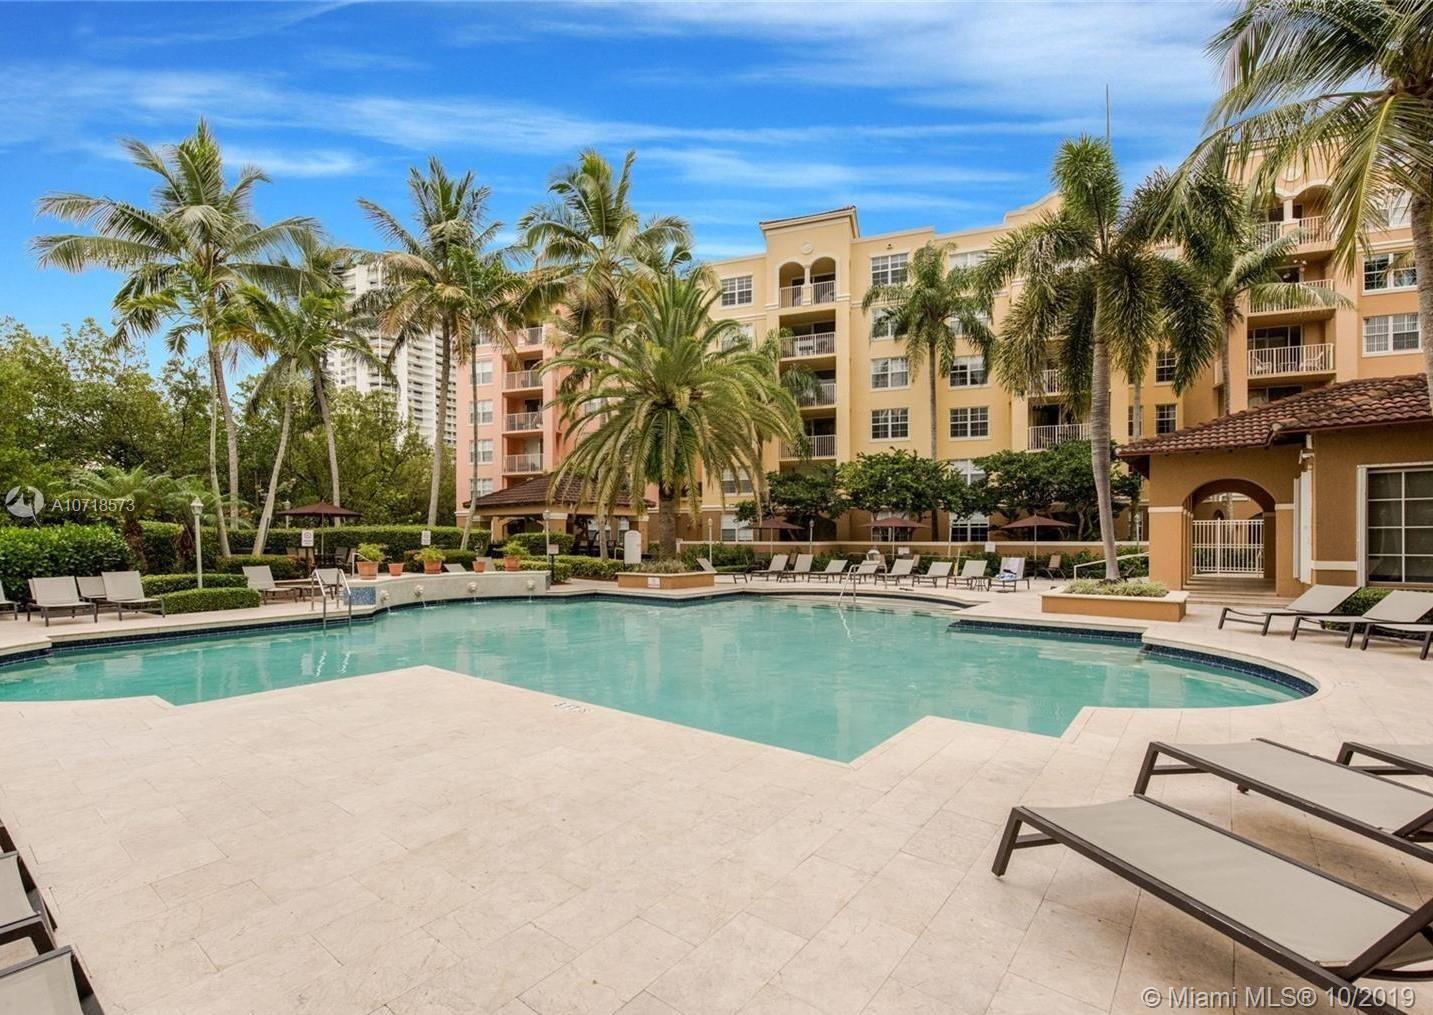 19999 E Country Club Dr #1107 For Sale A10718573, FL